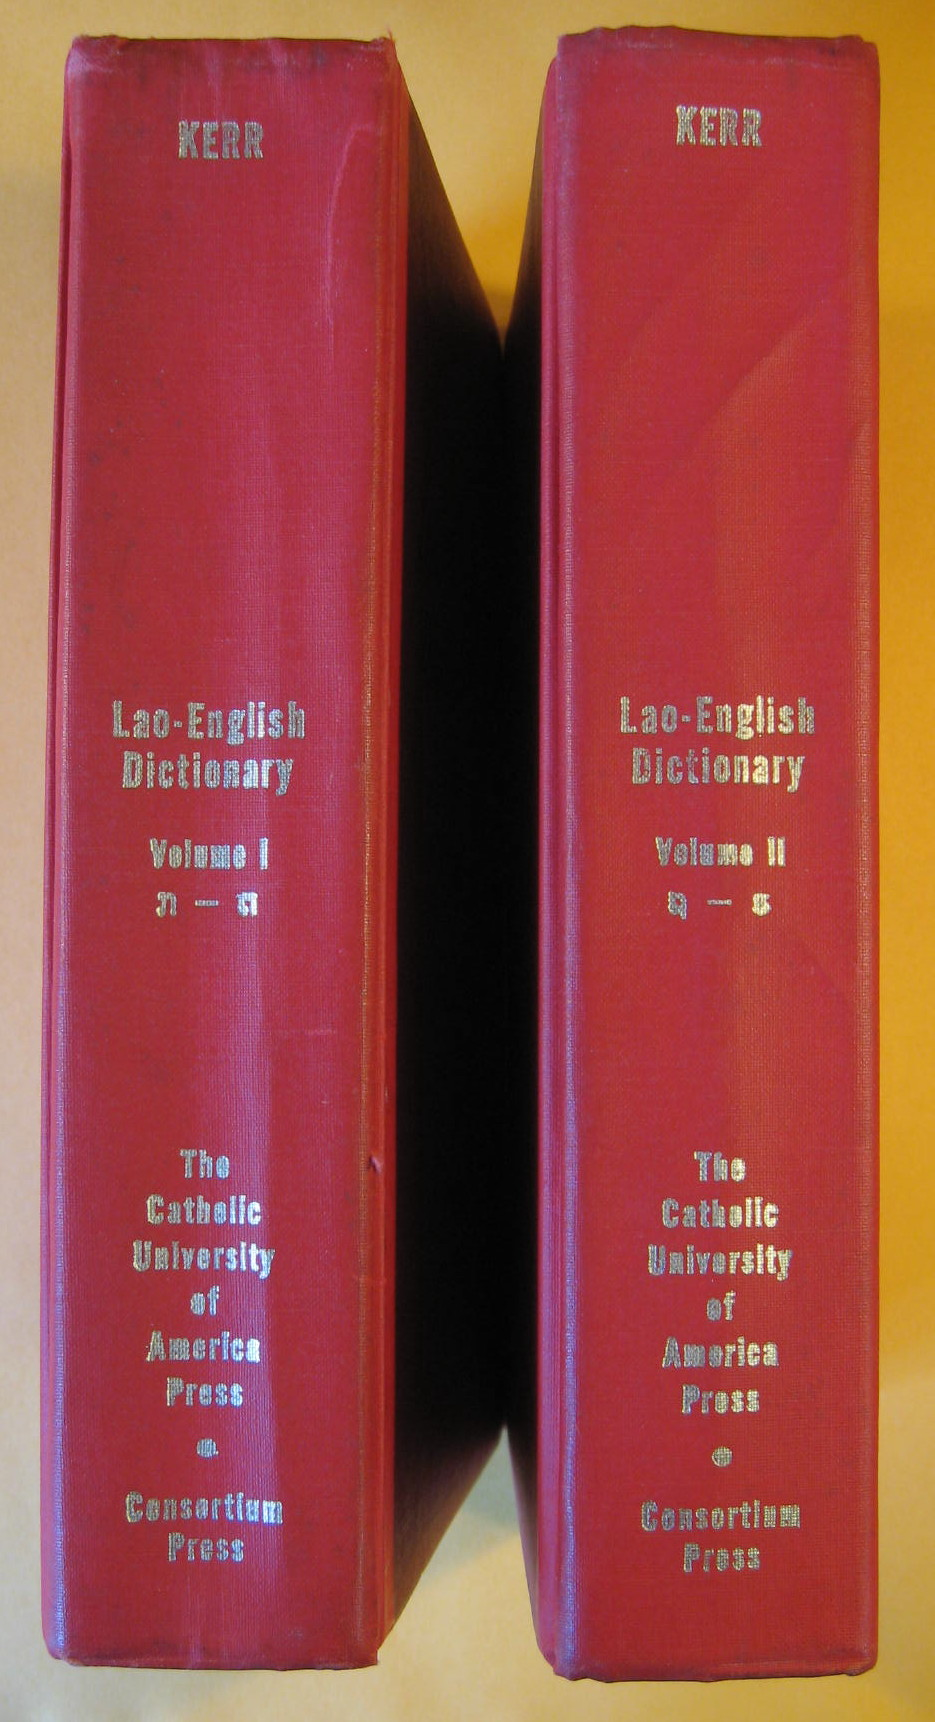 Lao-English Dictionary (Two Volumes), Kerr, Allen D.